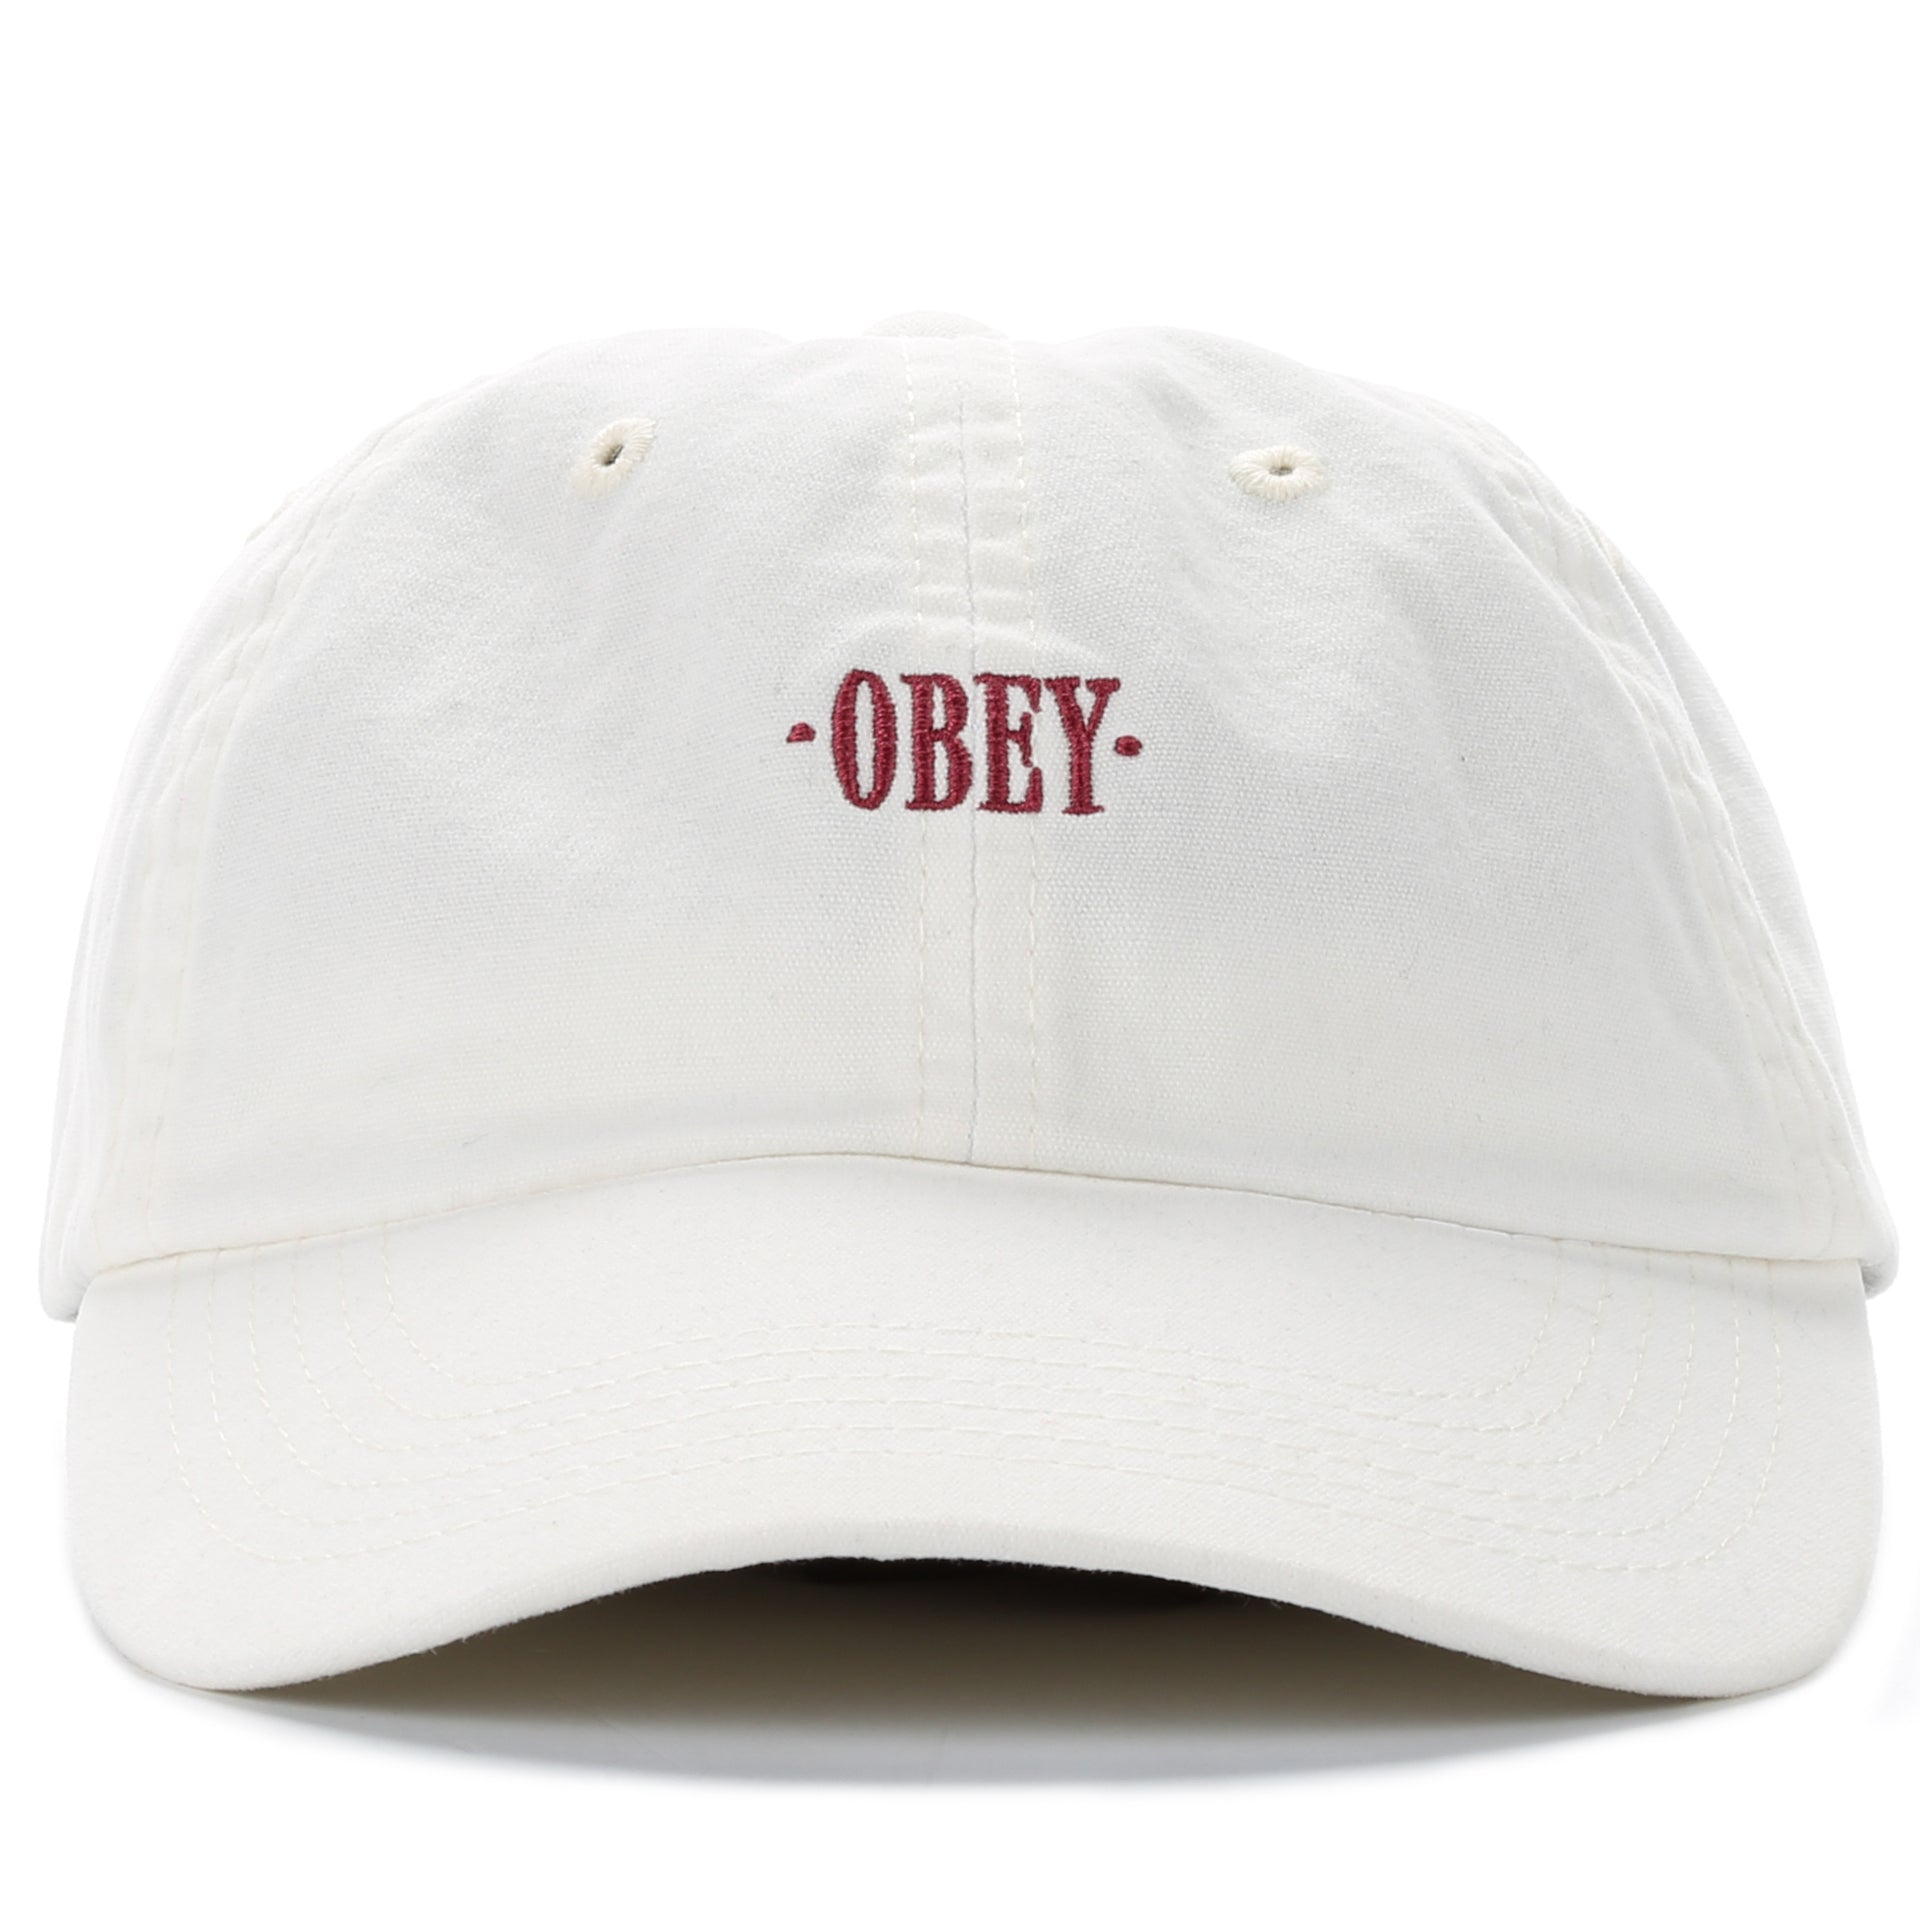 5263cab5bd8 Obey Endless Hat - White - New Star